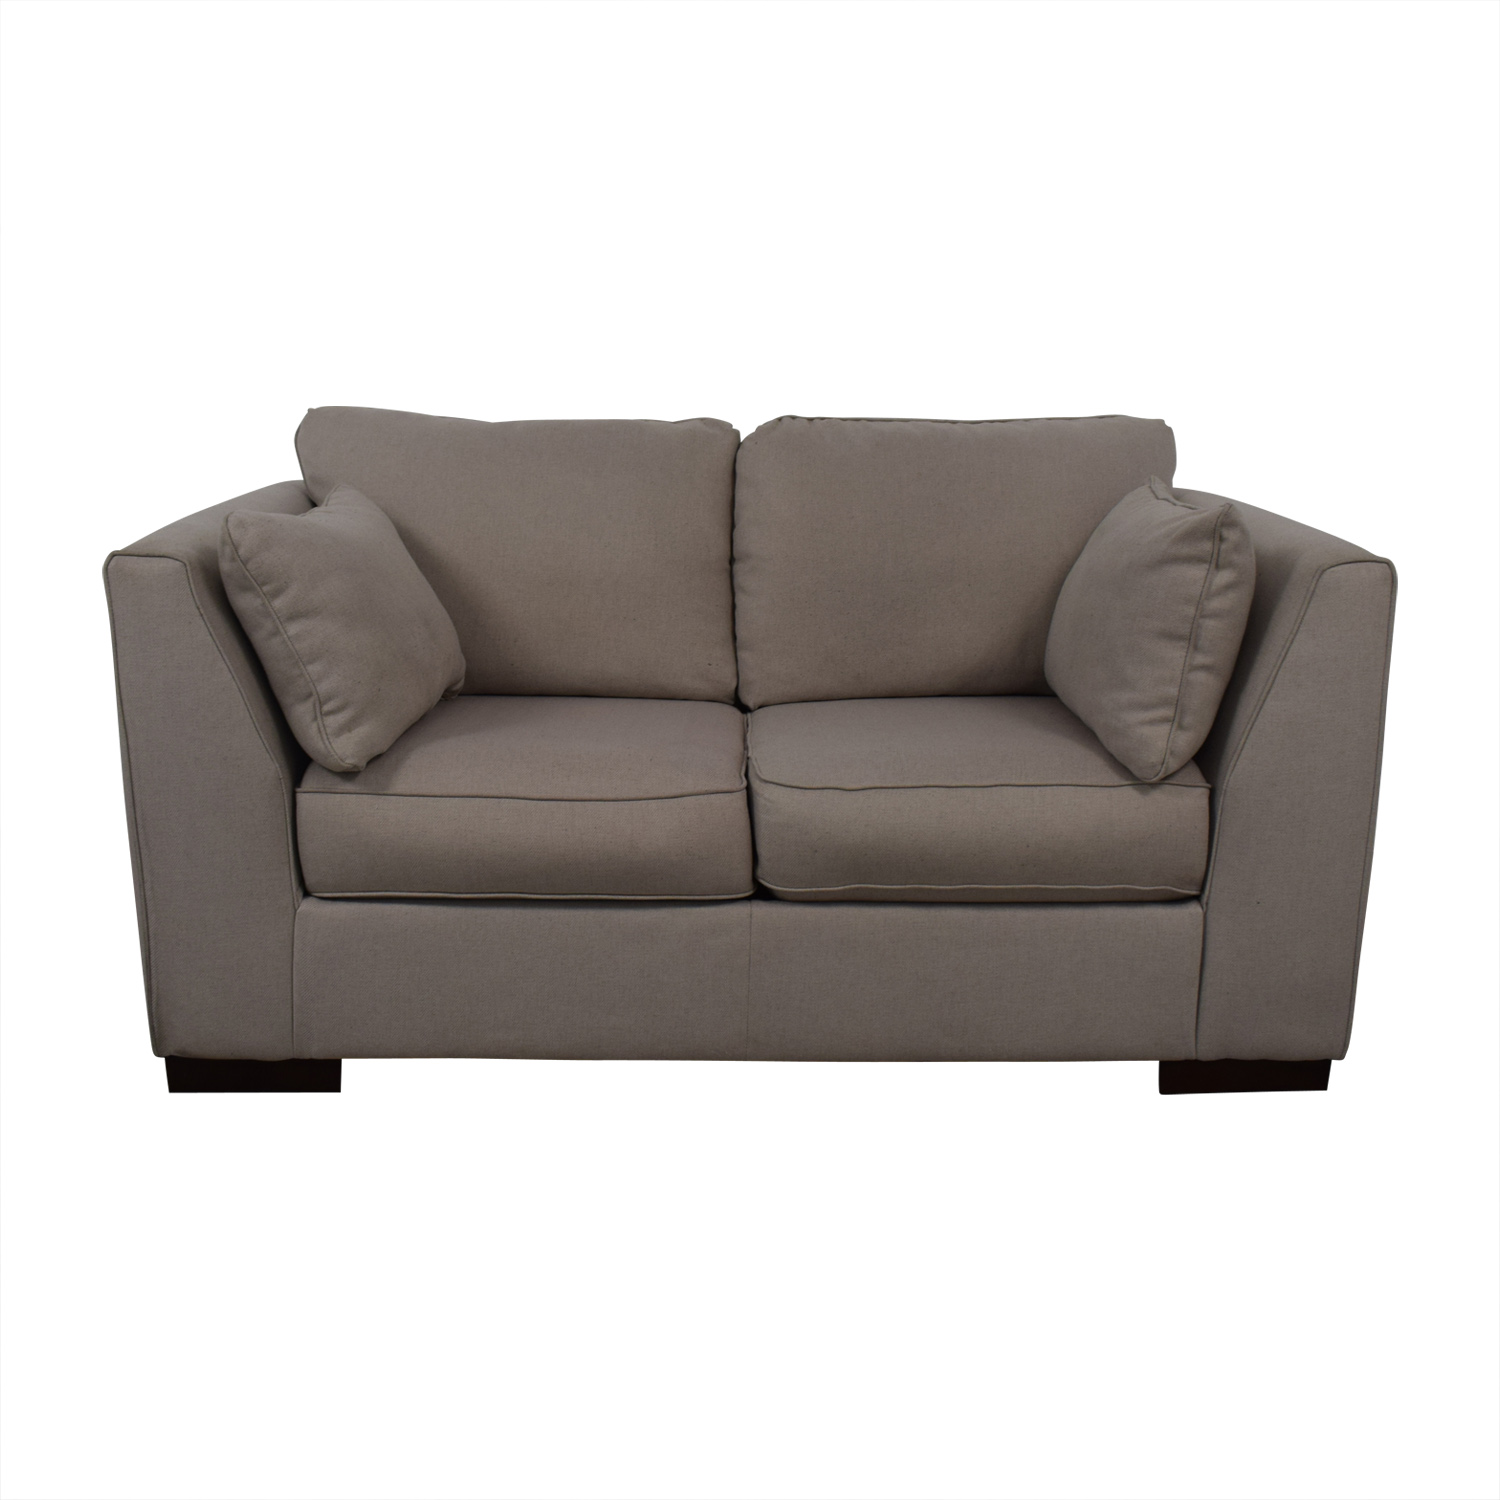 Ashley Furniture Ashley Furniture Pierin Loveseat discount